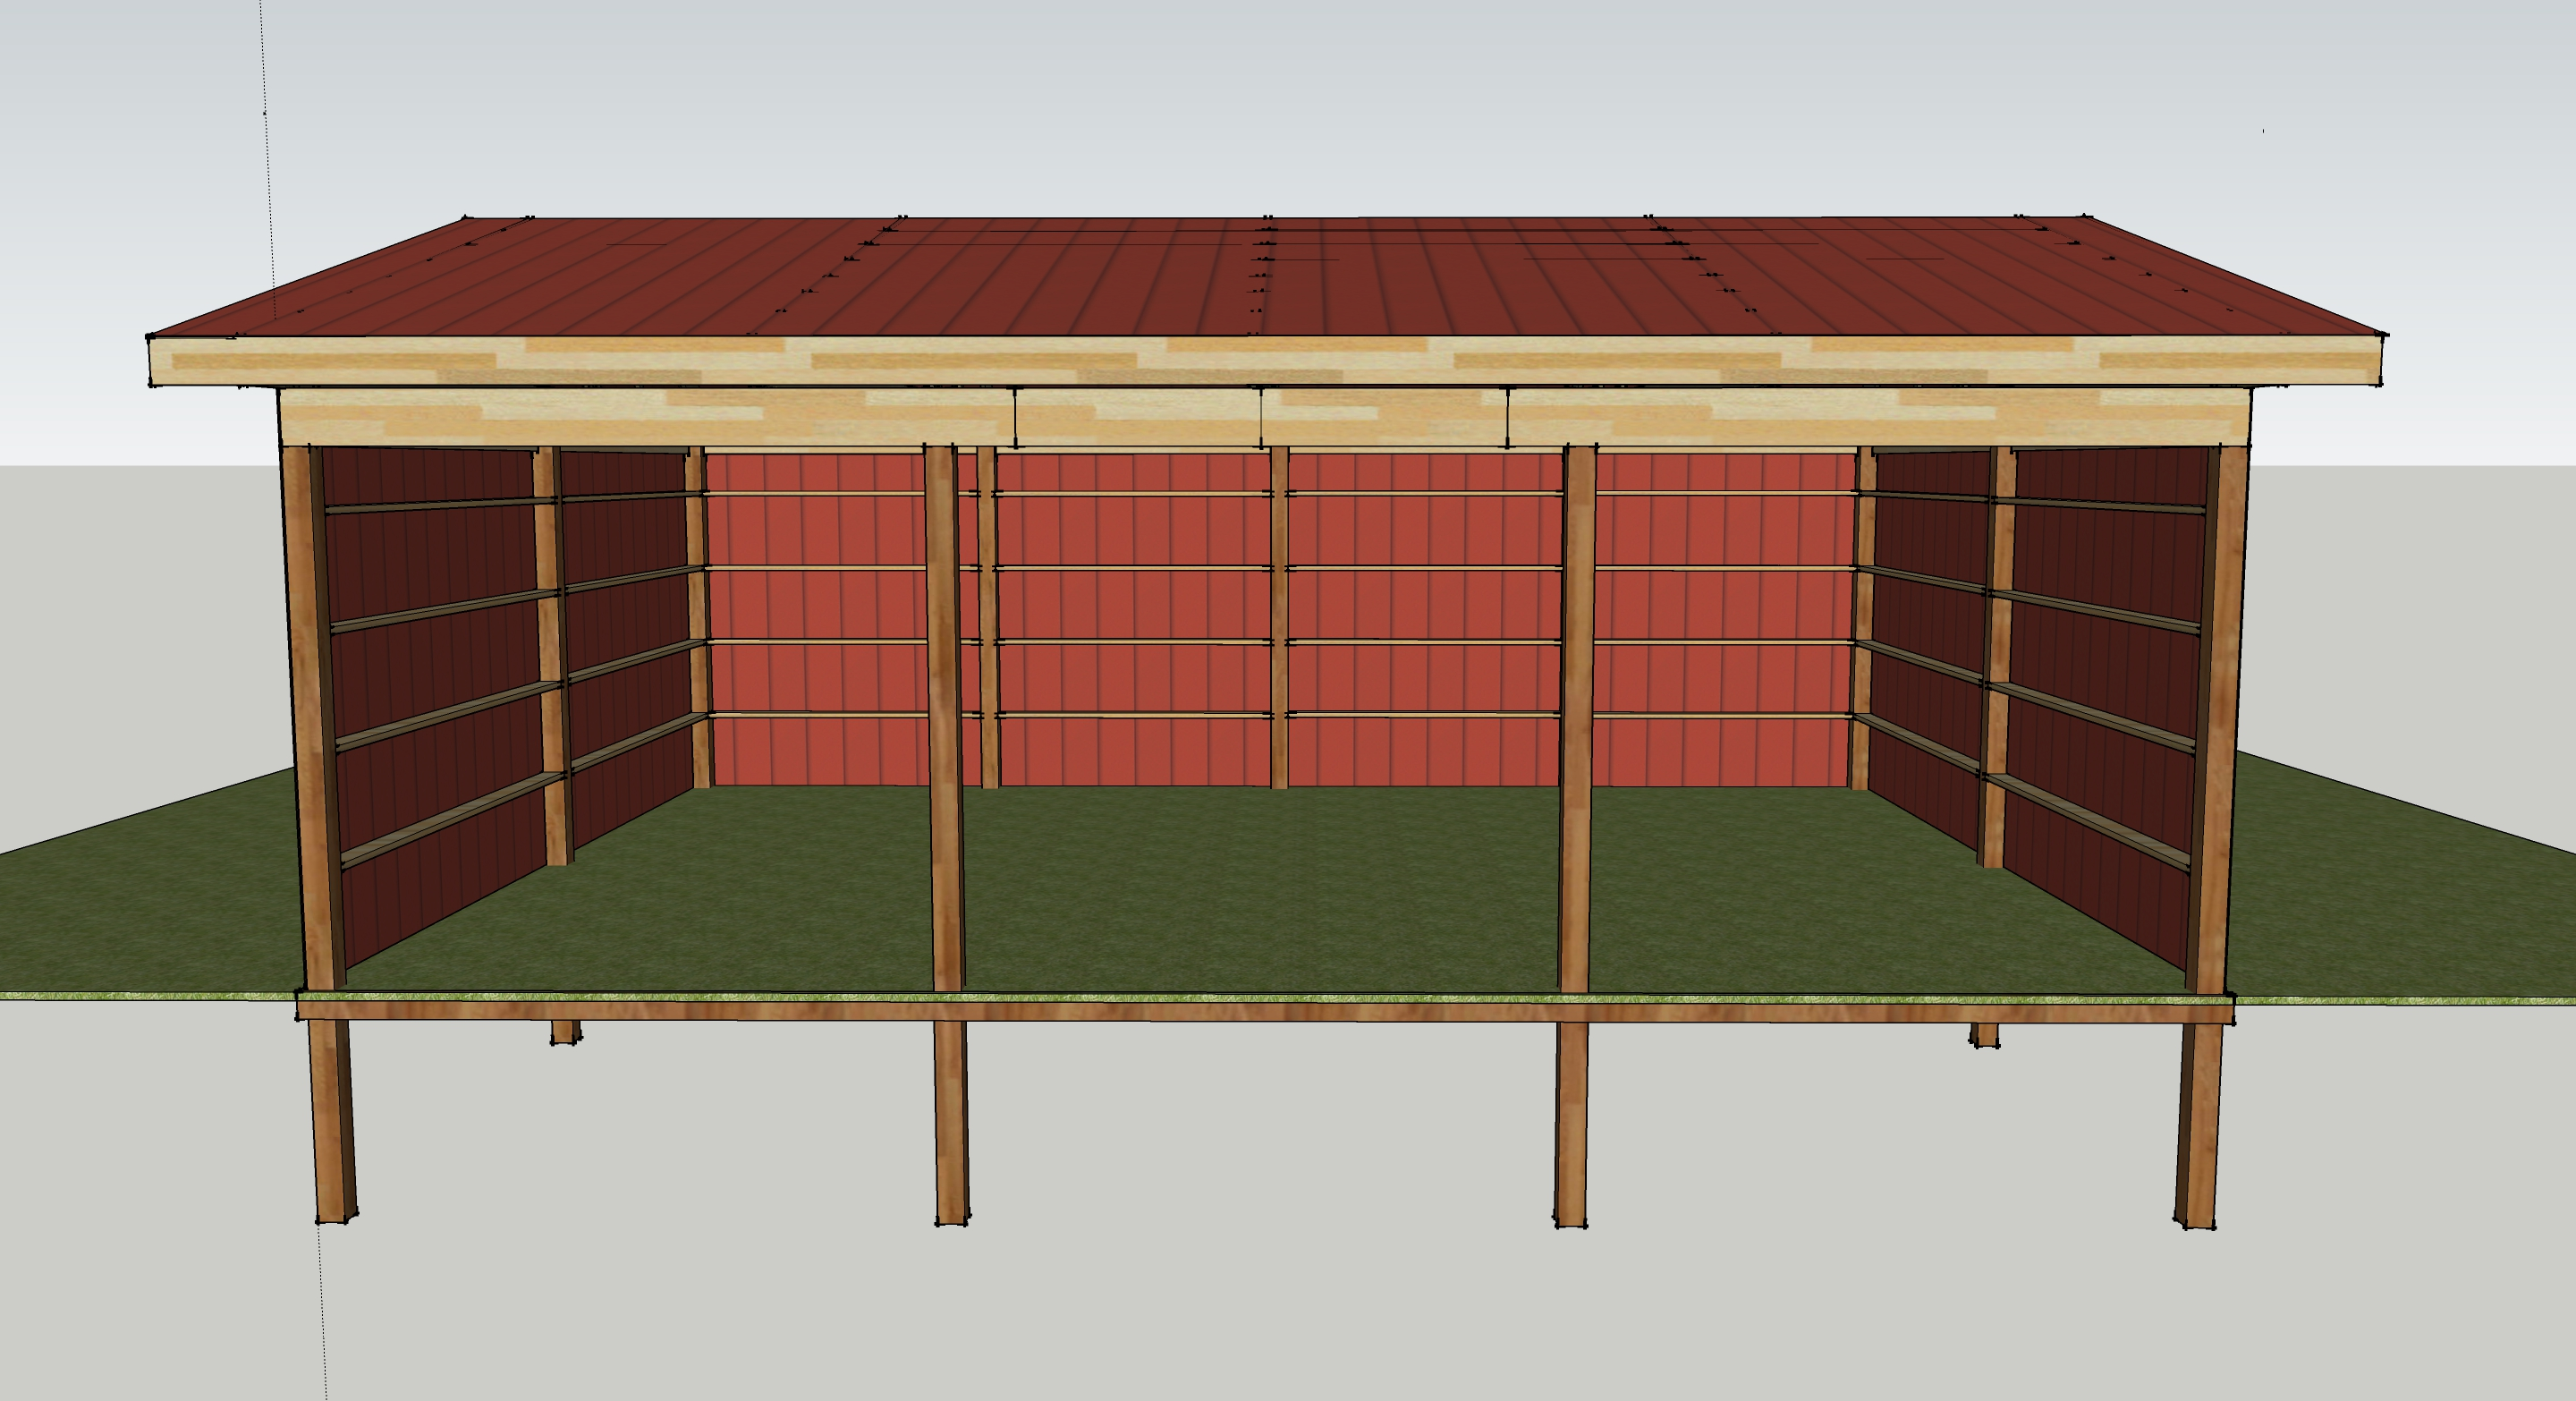 Pole barn plans 24 x 32 joy studio design gallery best for How to build a pole barn plans for free